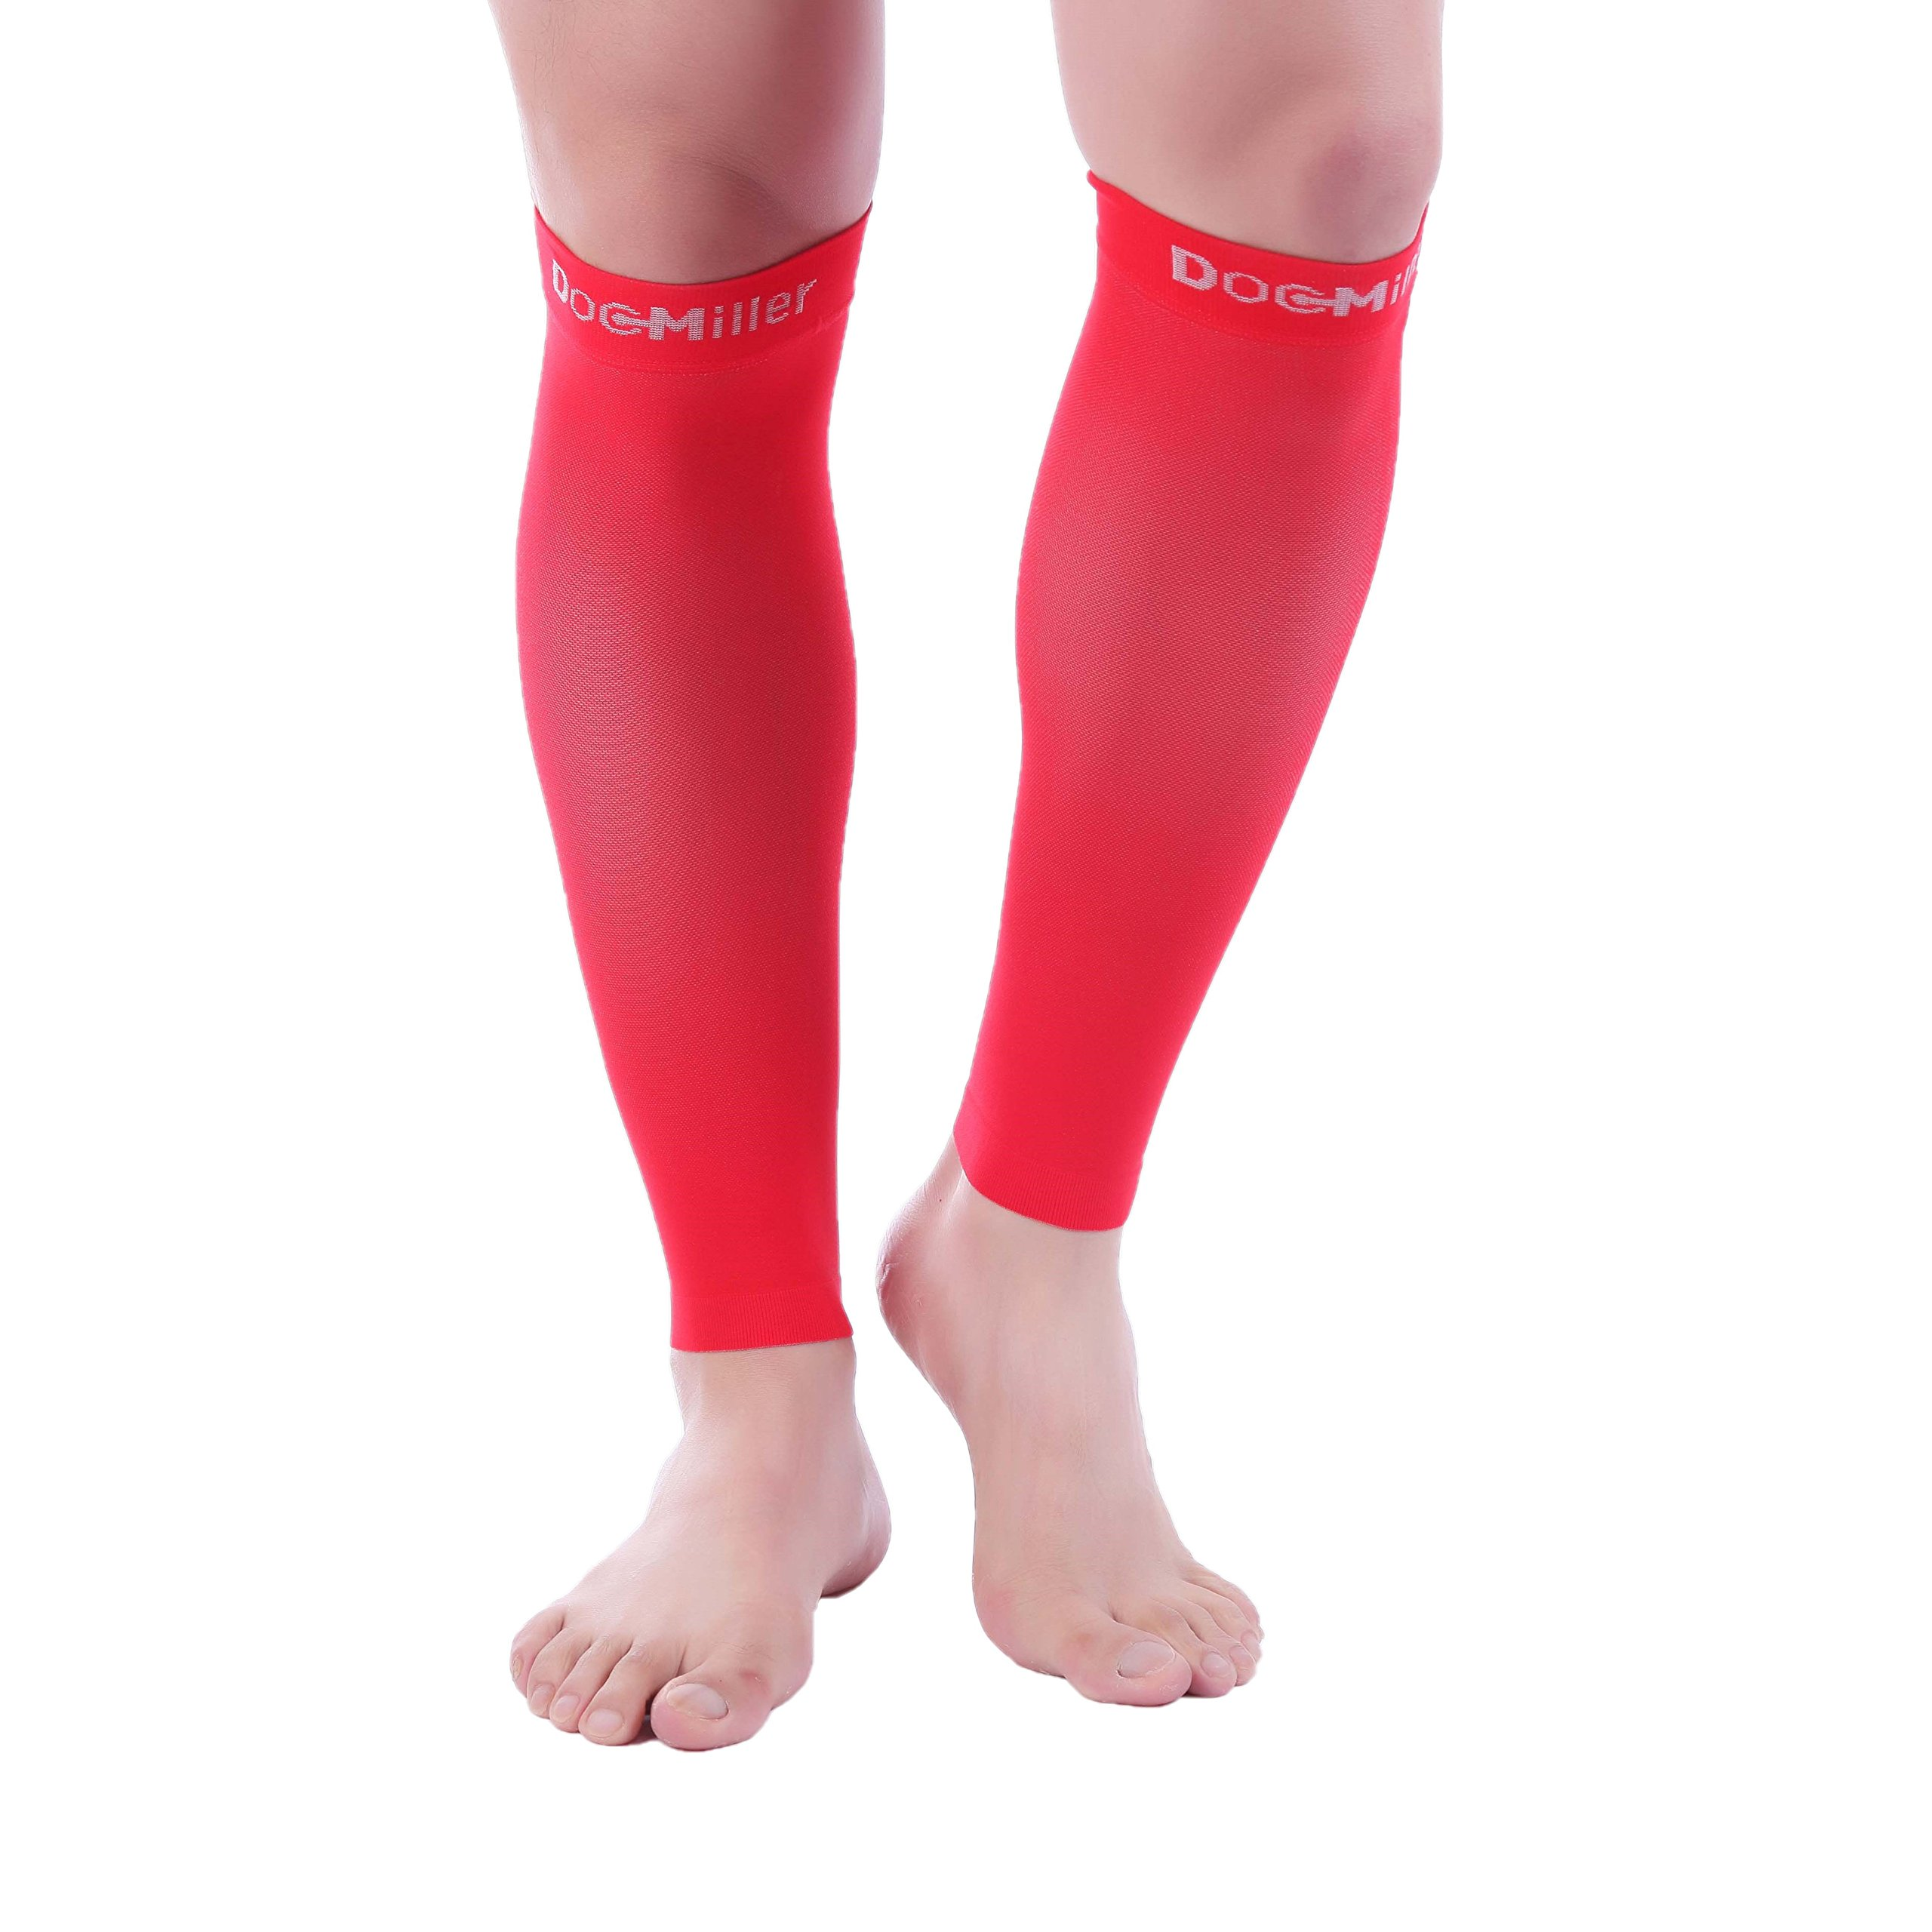 Doc Miller Premium Calf Compression Sleeve 20-30mmHg - 1 Pair Strong Calf Support Graduated Pressure for Sports Running Muscle Recovery Shin Splints Varicose Veins (Red, 2-Pack, XX-Large)